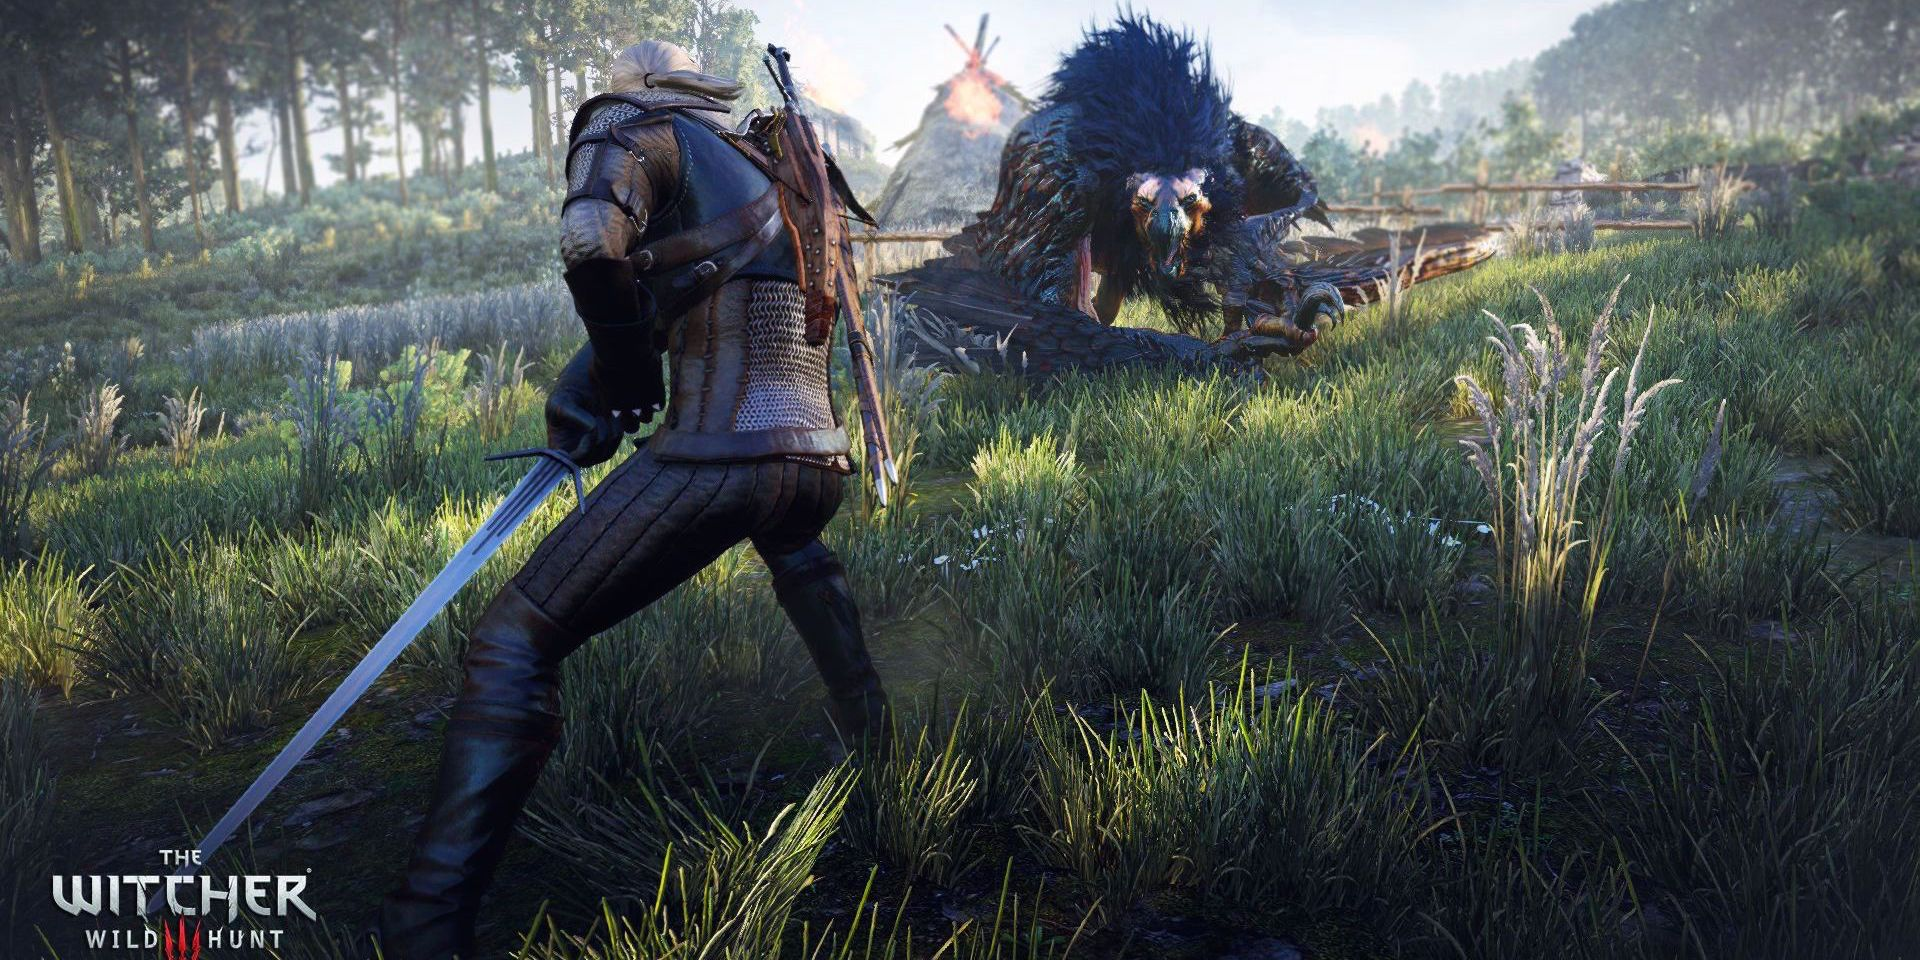 Today's Best Game Deals: Witcher 3 Complete $15, Bloodborne Complete $17.50, more - 9to5Toys